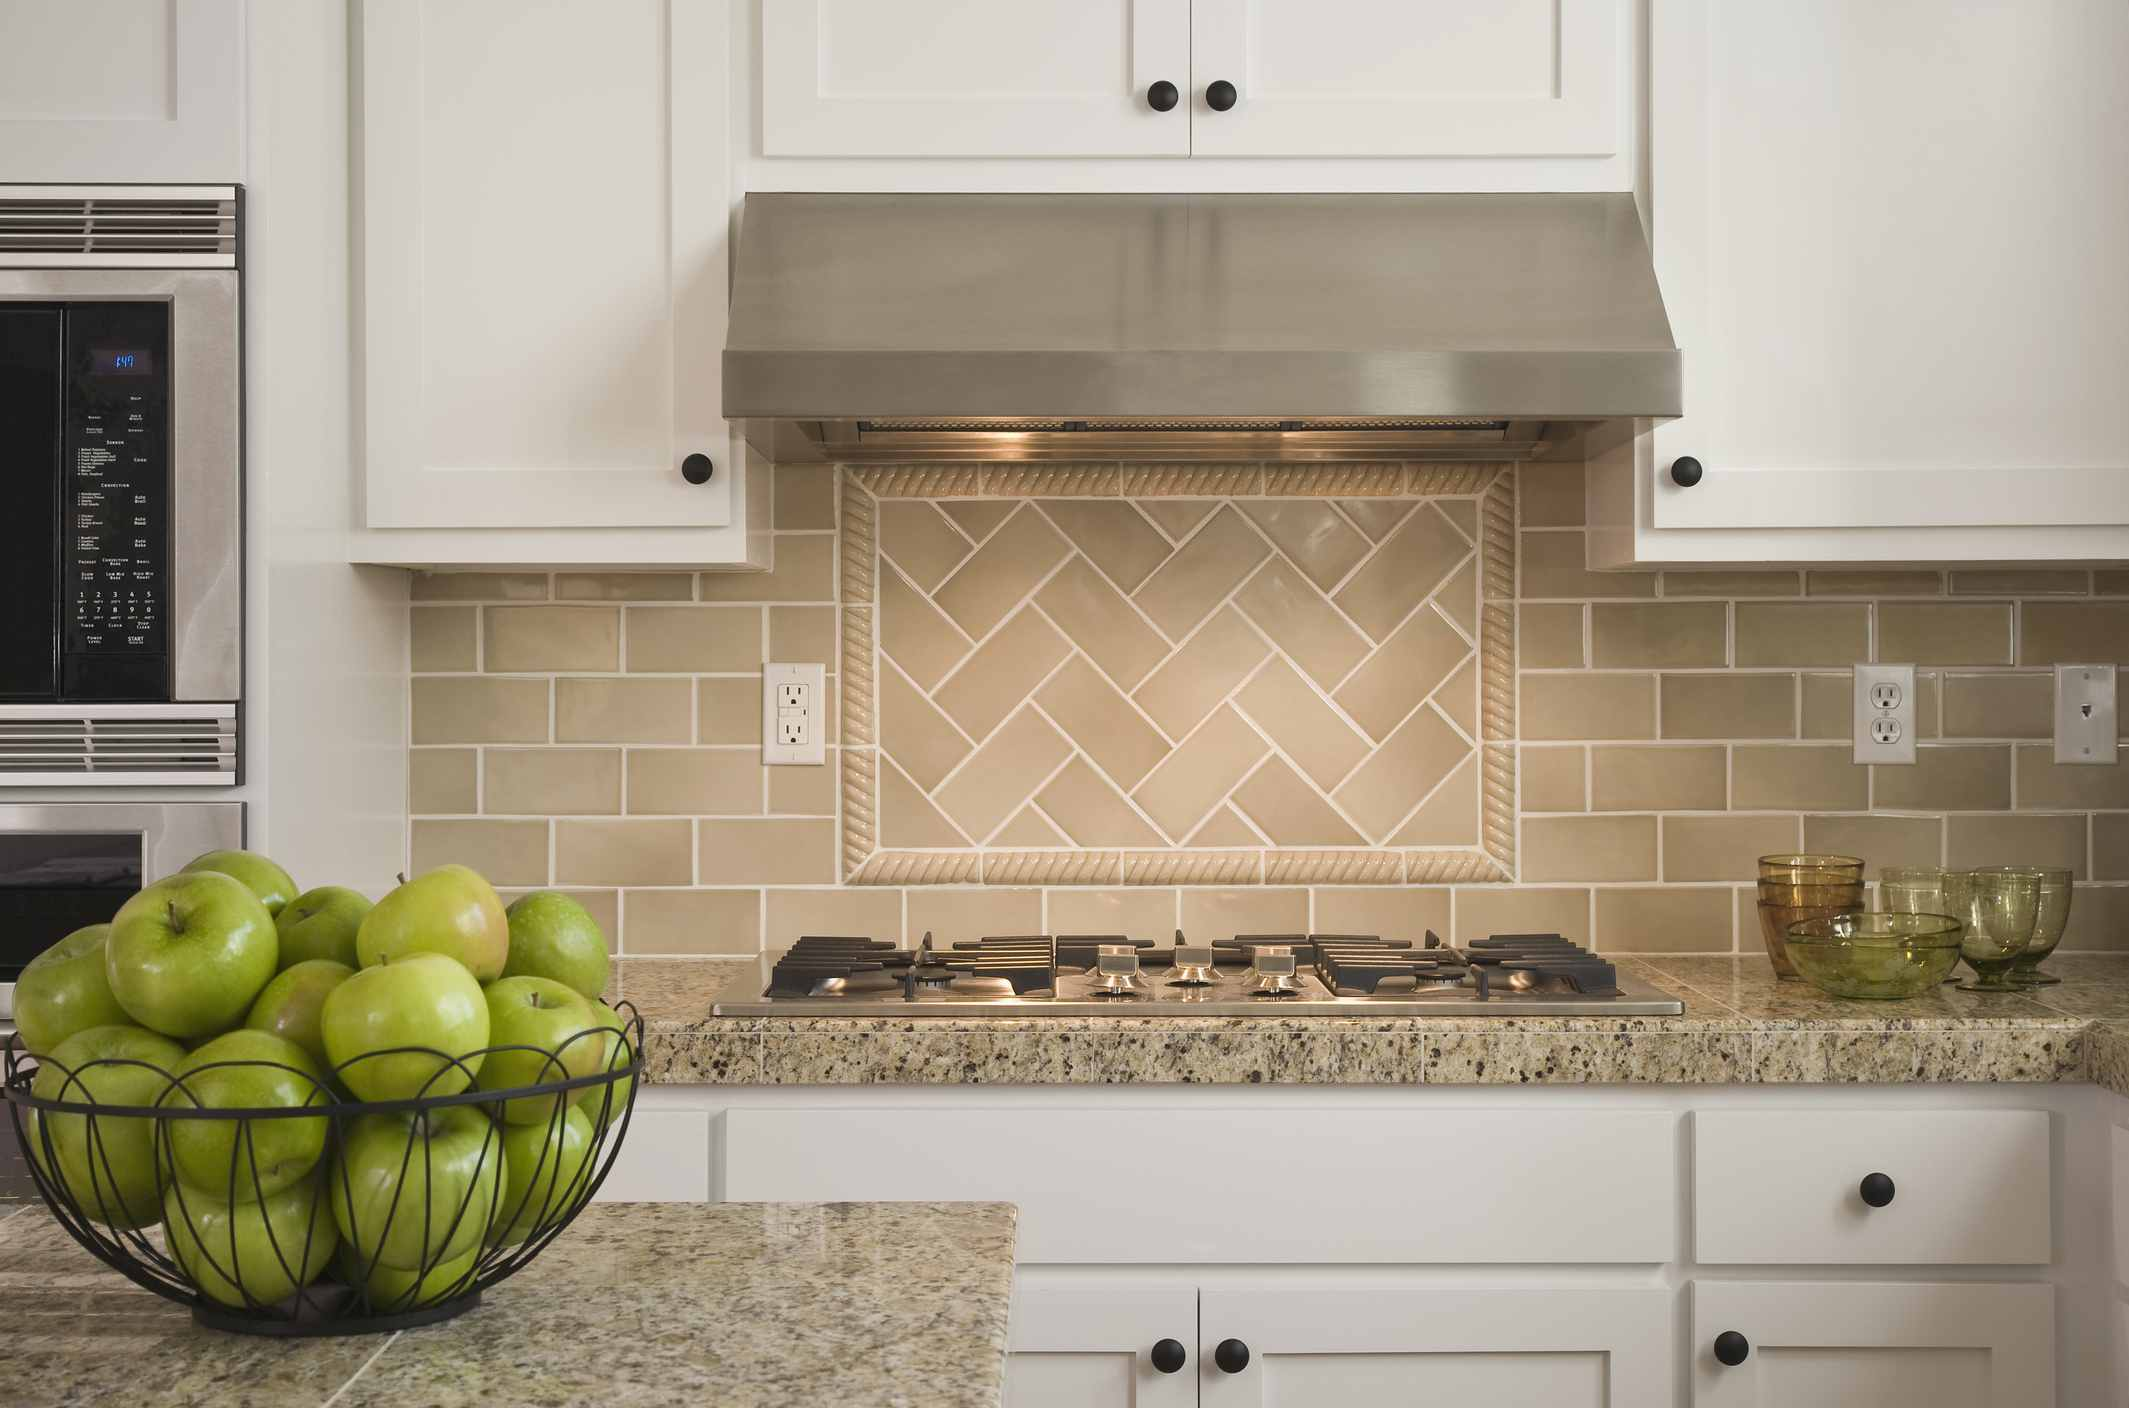 kitchen backsplash ceramic tile the best backsplash materials for kitchen or bathroom 19129